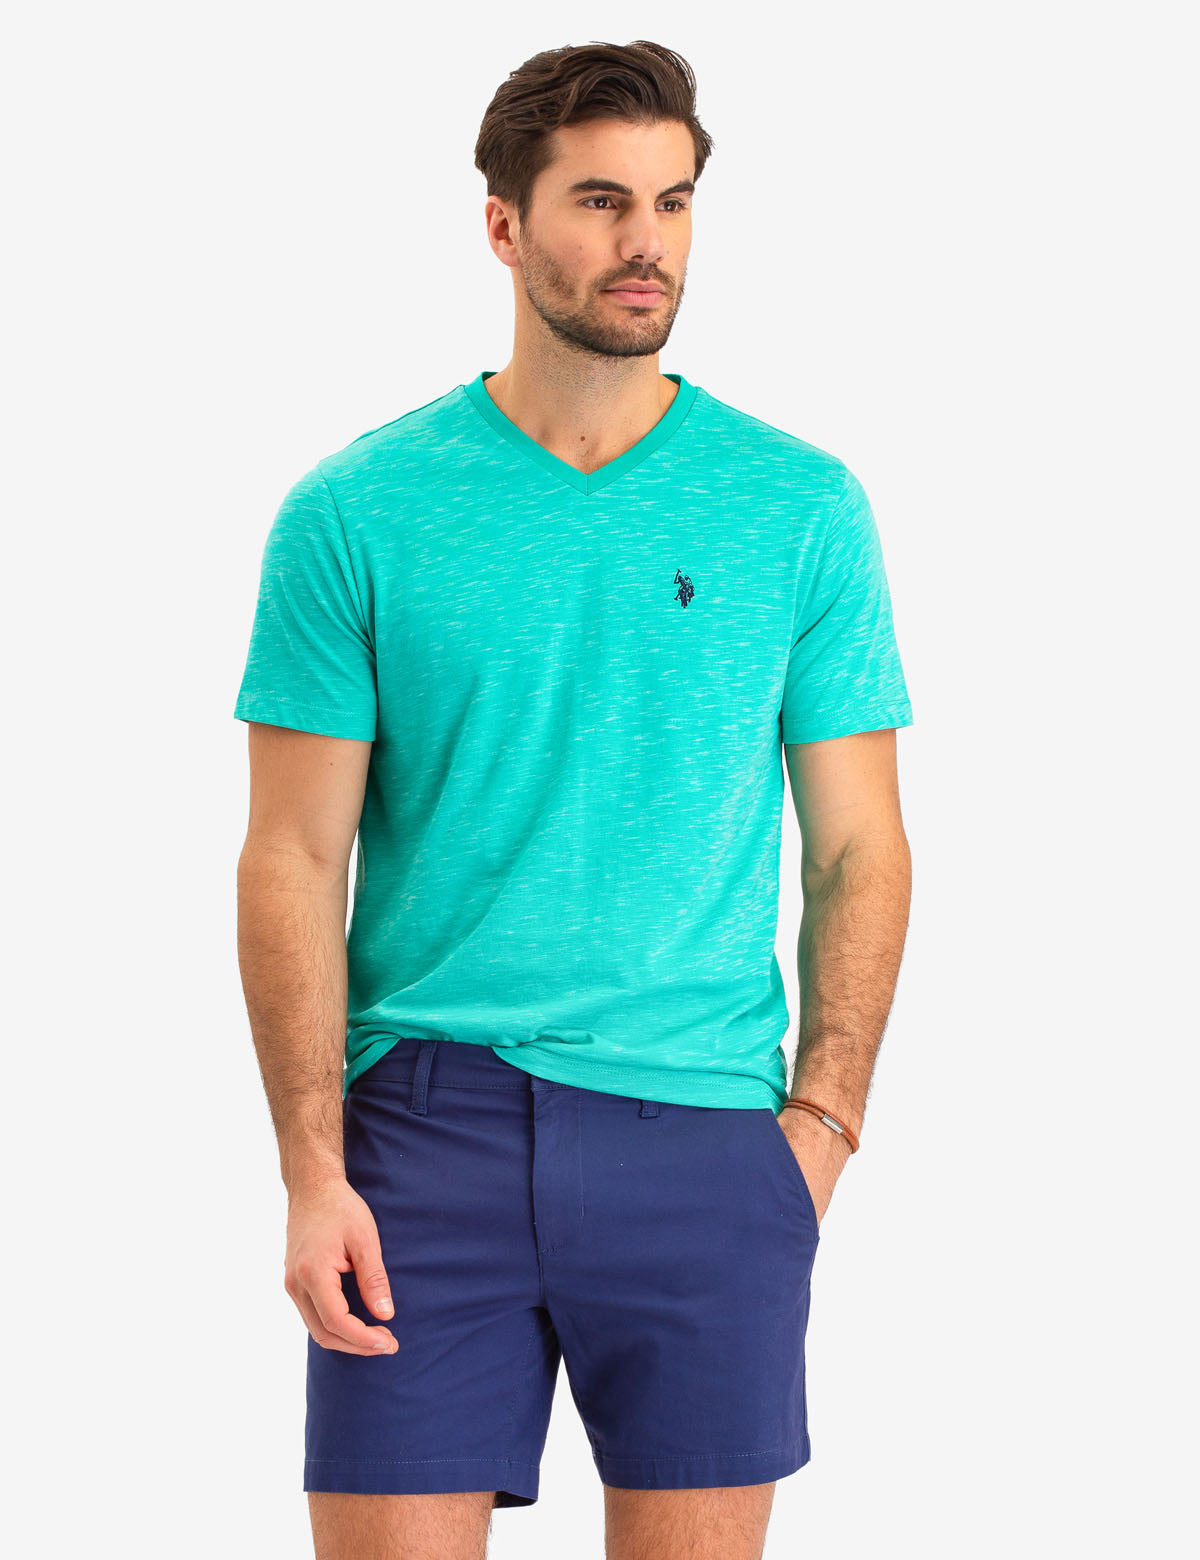 SPACE DYE V-NECK T-SHIRT - U.S. Polo Assn.